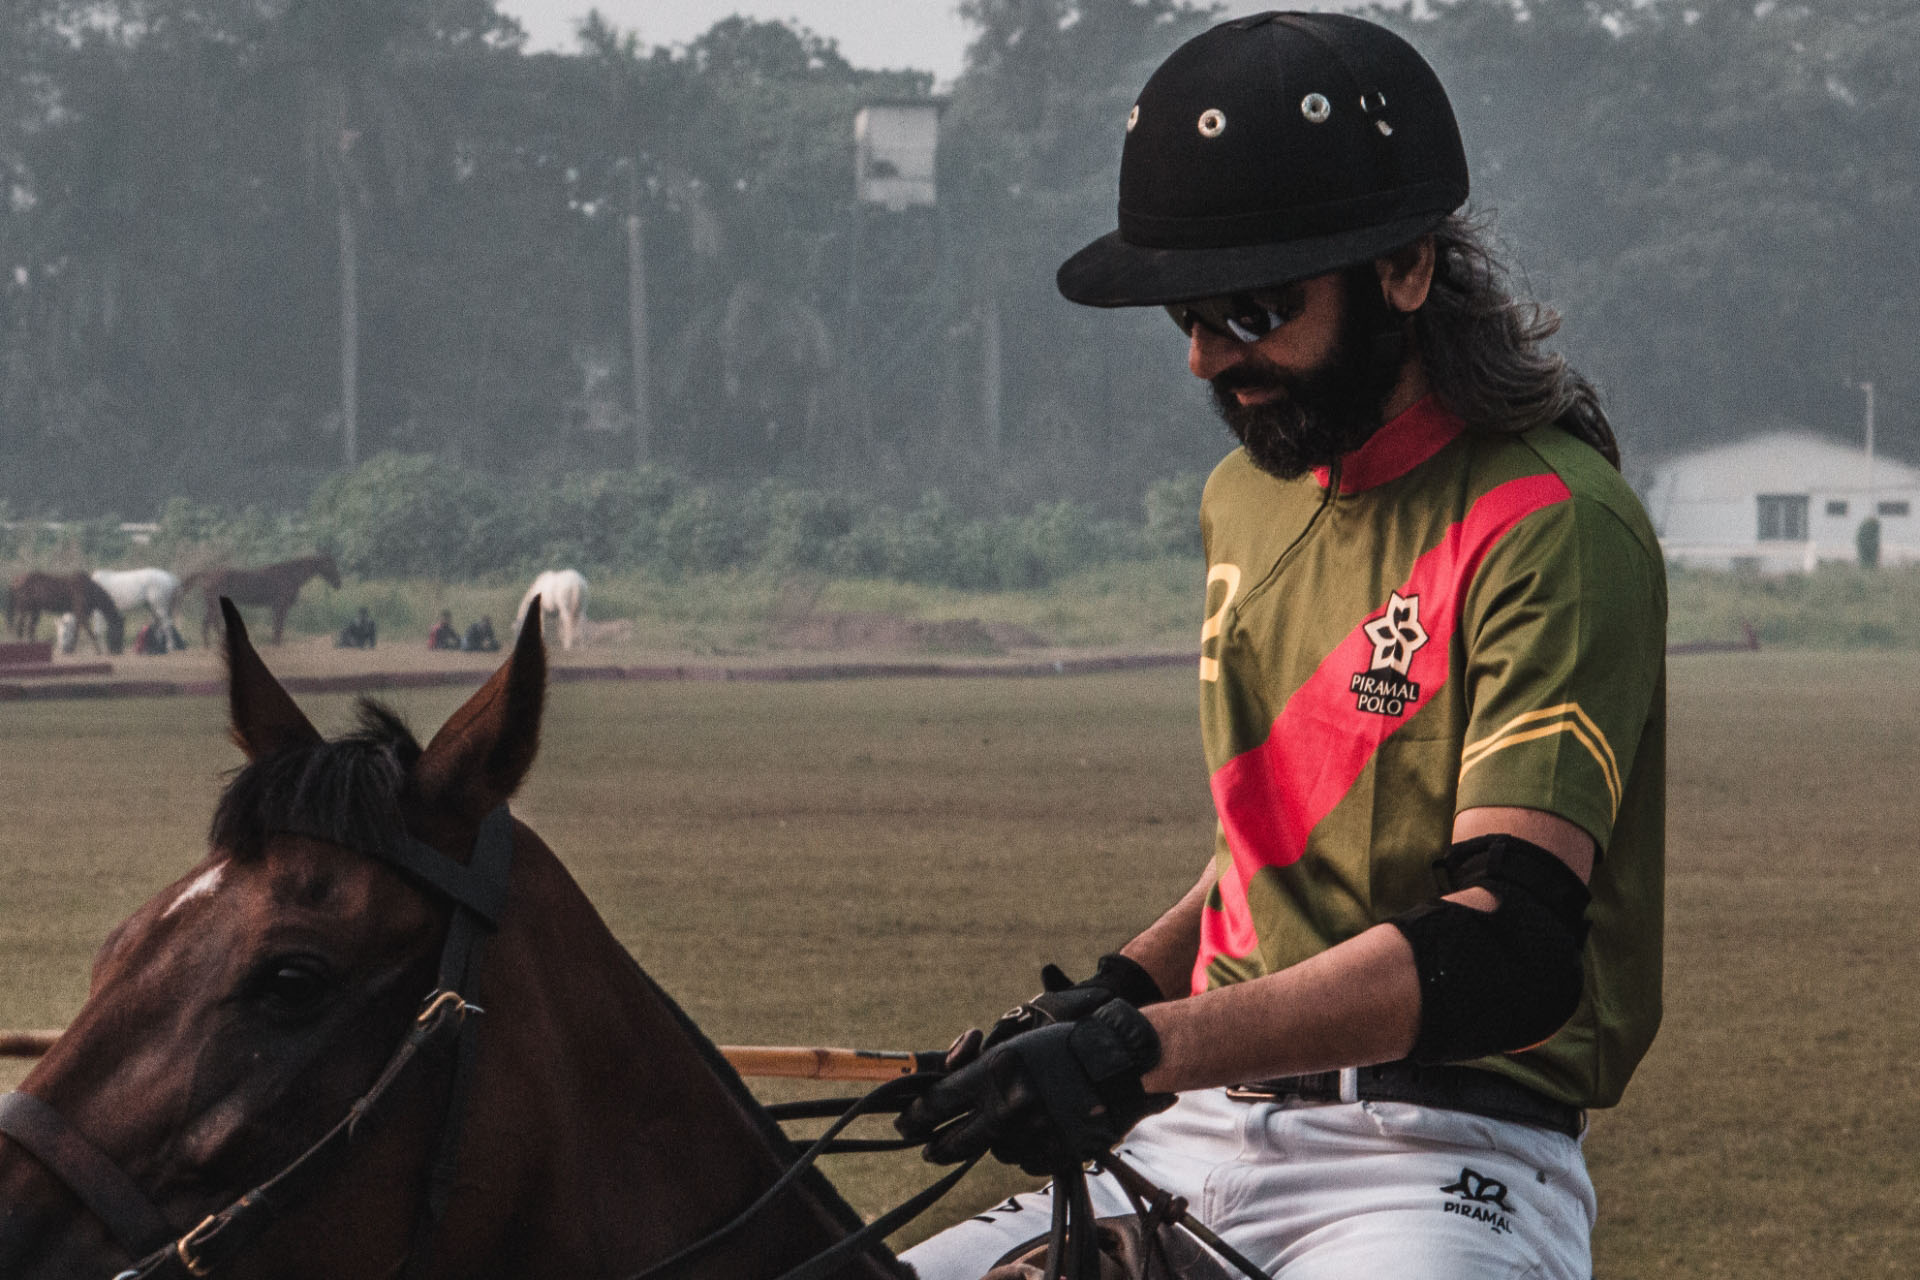 """Polo gives me sheer joy"": Harsh Piramal"